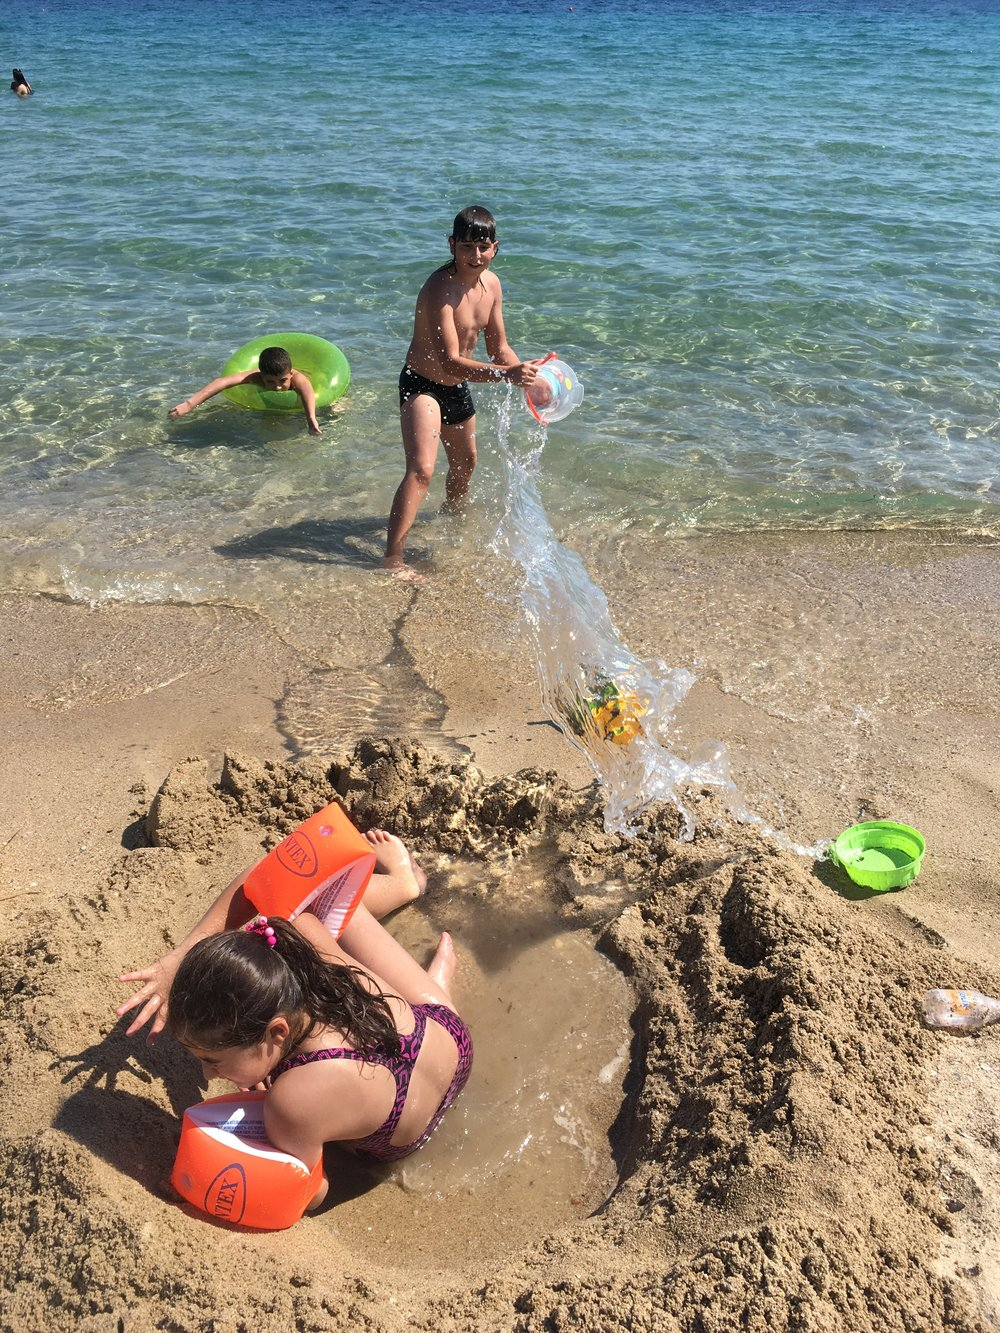 The kids usually play for a full four hours and never leave the sea. Except for water fights  and sand castle building.